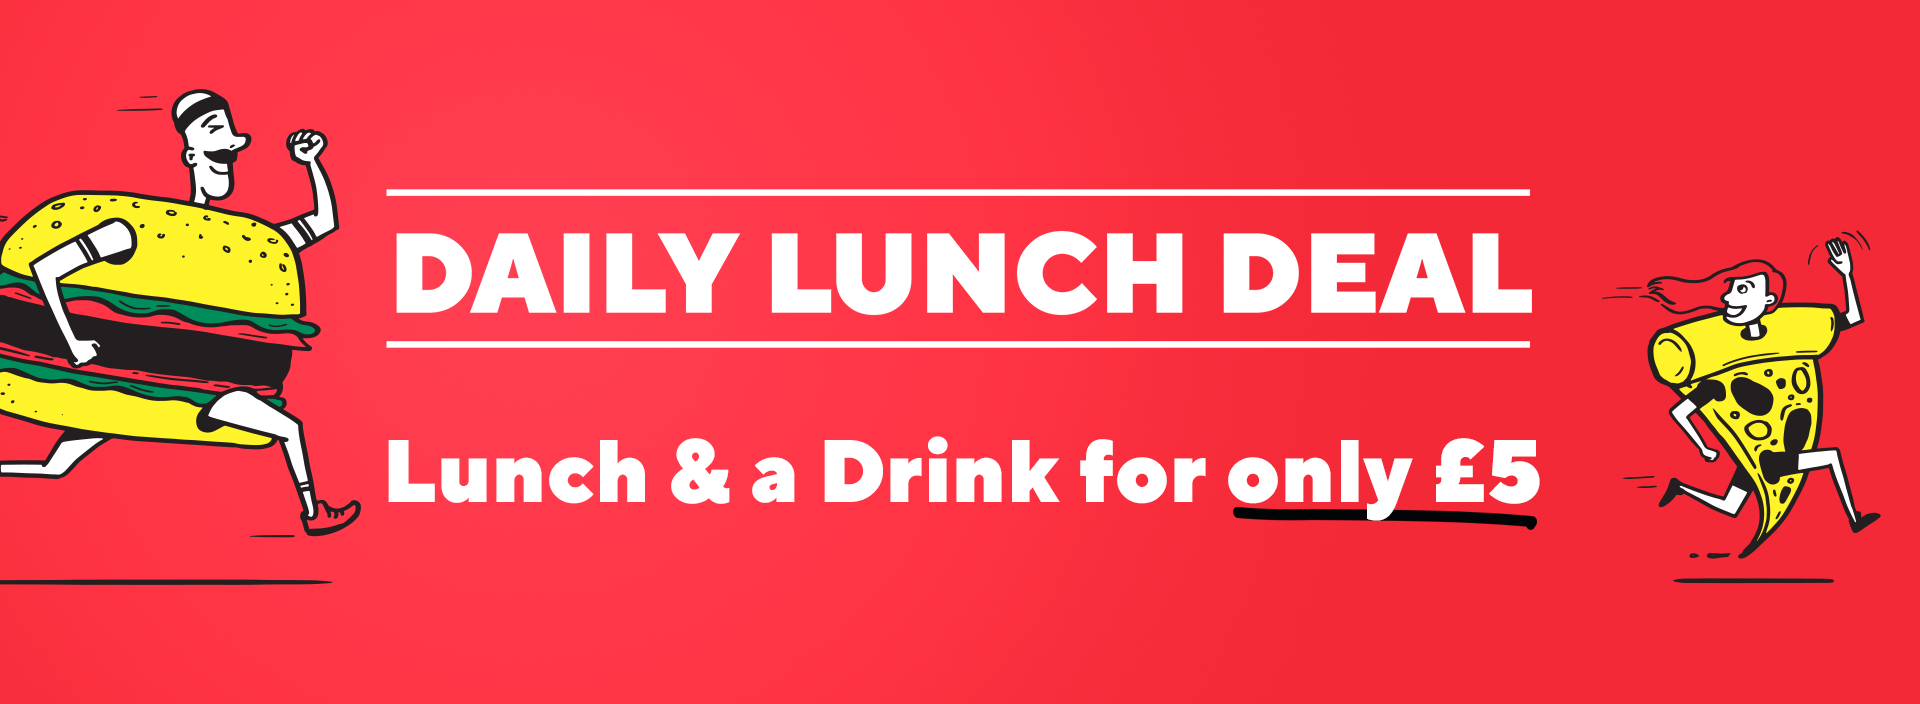 Daily Lunch Deals Header